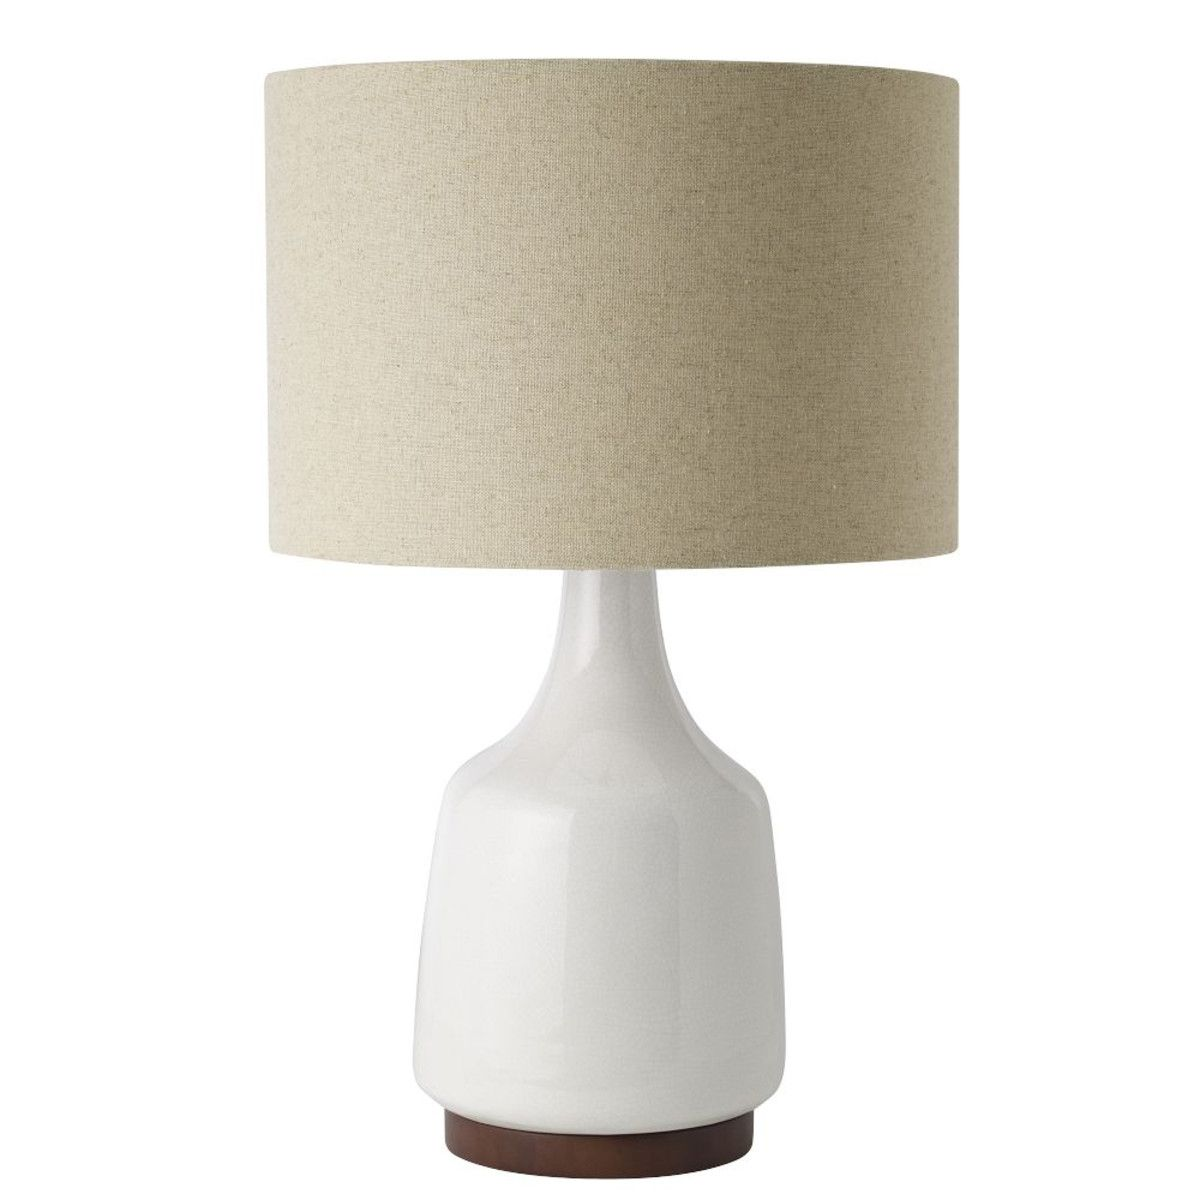 West elm morten table lamp white freeman master bedroom west elm morten table lamp white aloadofball Choice Image